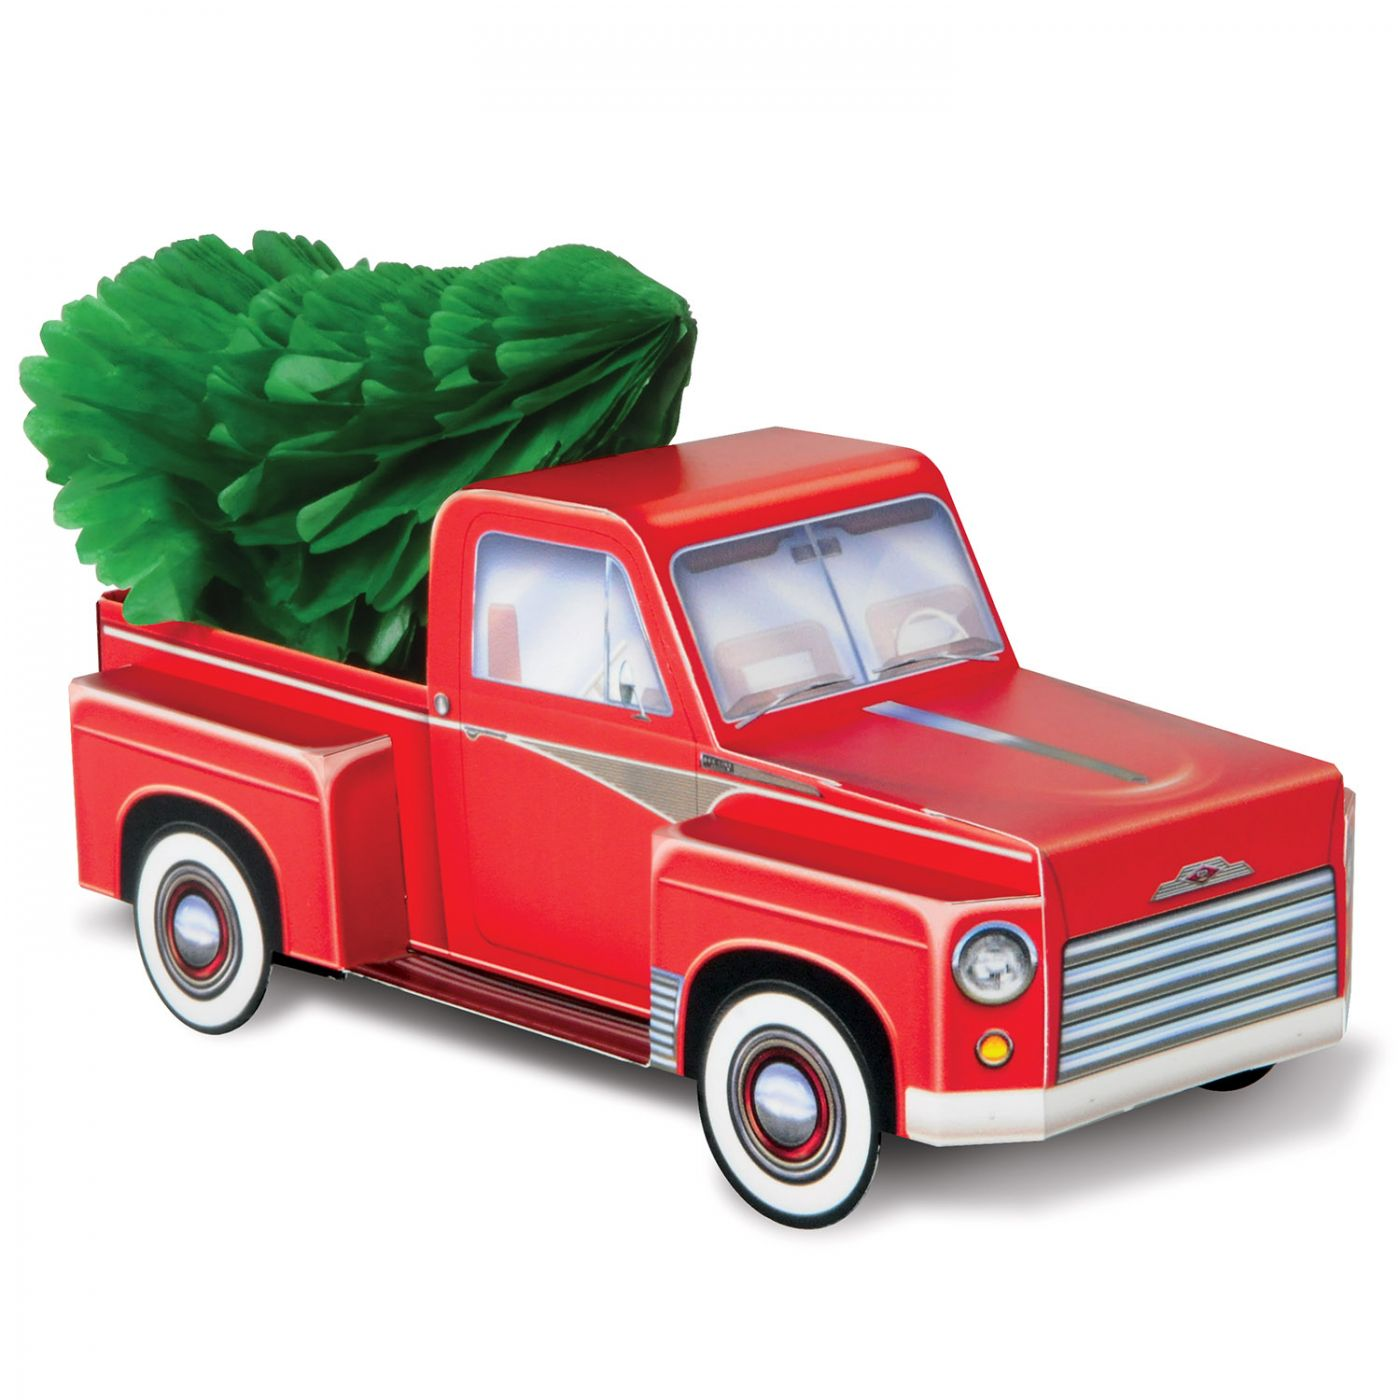 Image of 3-D Christmas Truck Centerpiece